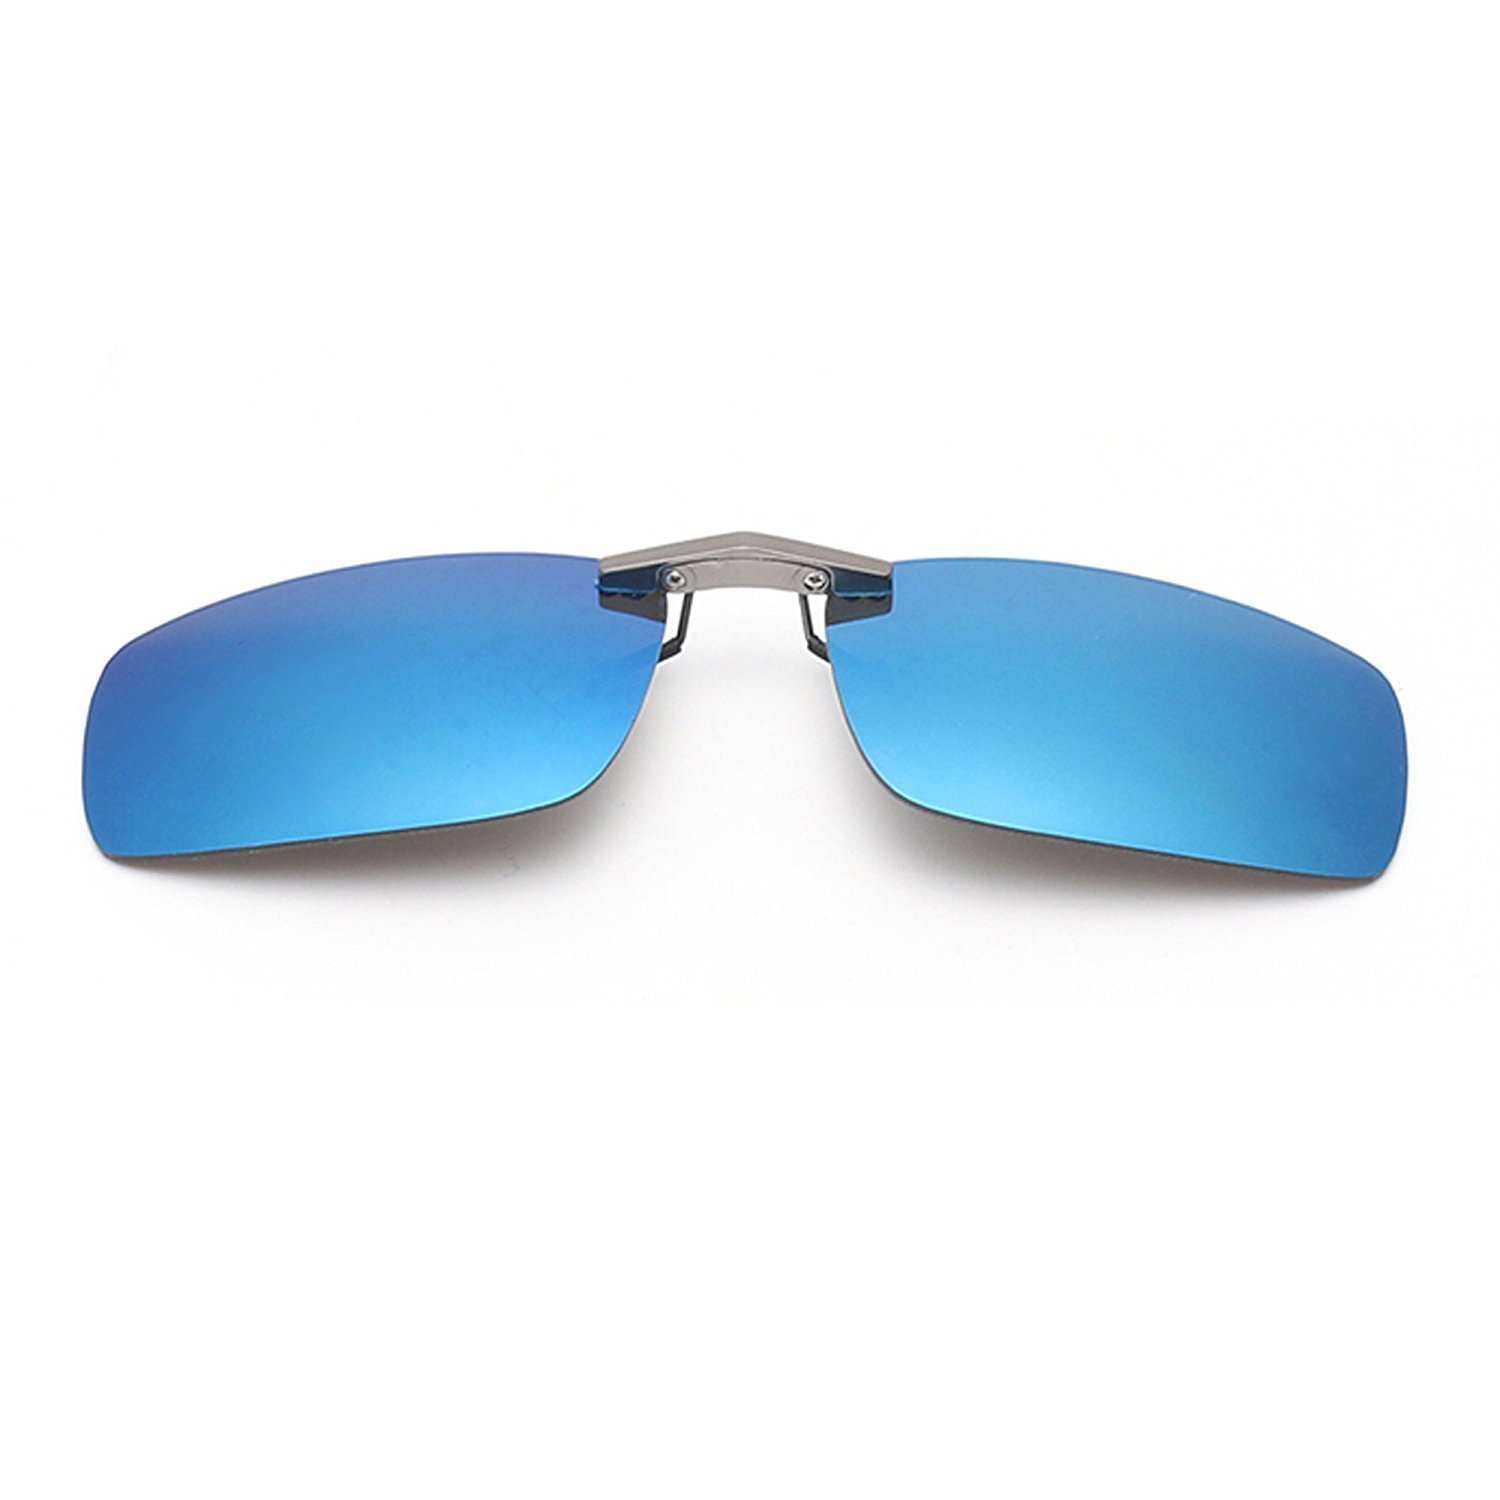 45b8d0f72c Get Quotations · Tacloft Unisex Rectangle 57mm Polarized Clip on Sunglasses  CLIPON2015 Perfect for Driving